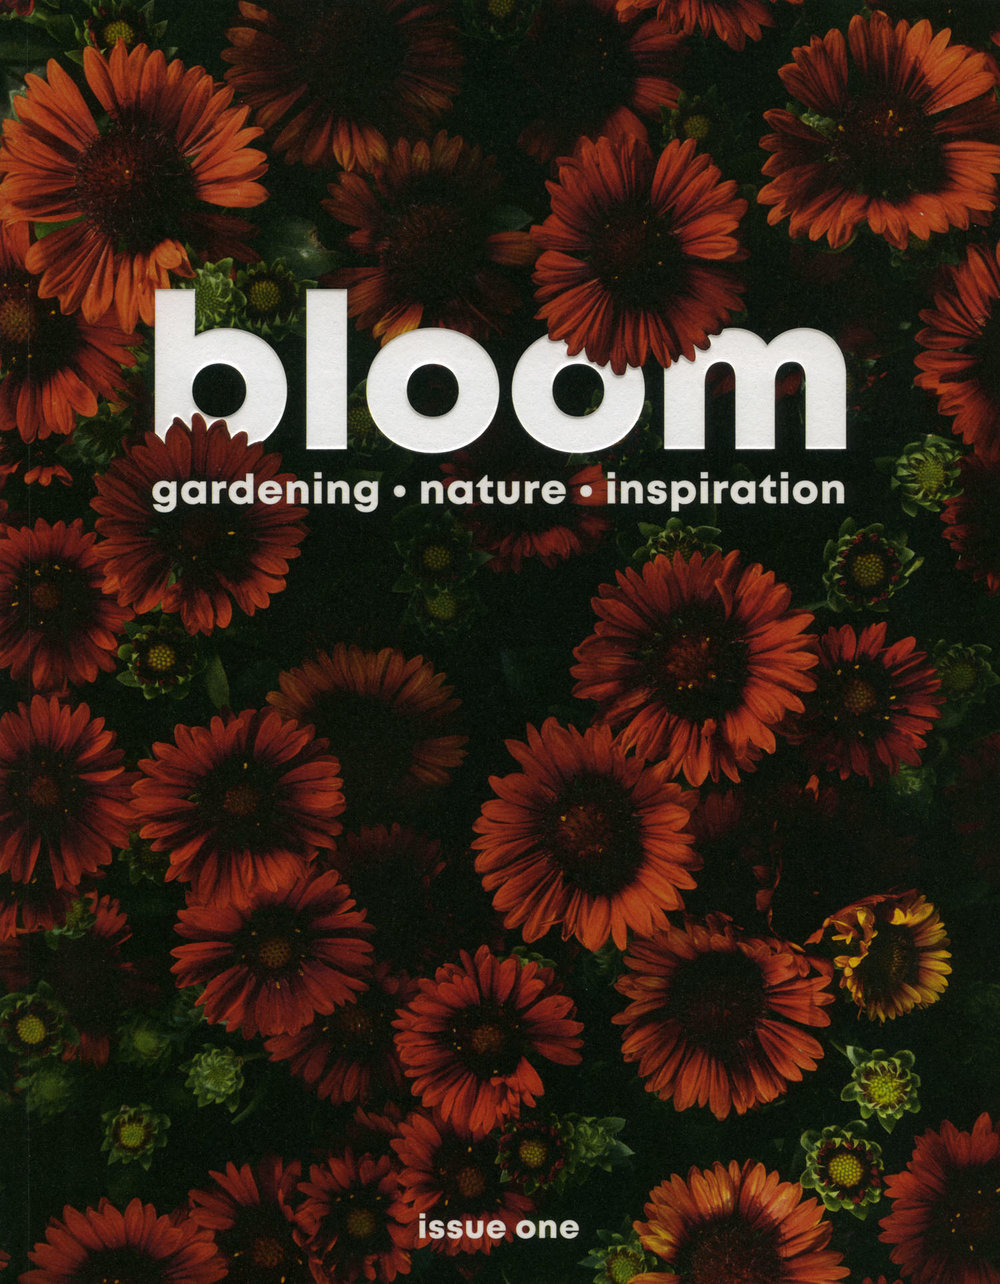 Bloom_Magazine_cover_photography_by_On_a_hazy_morning_Amsterdam001.jpg